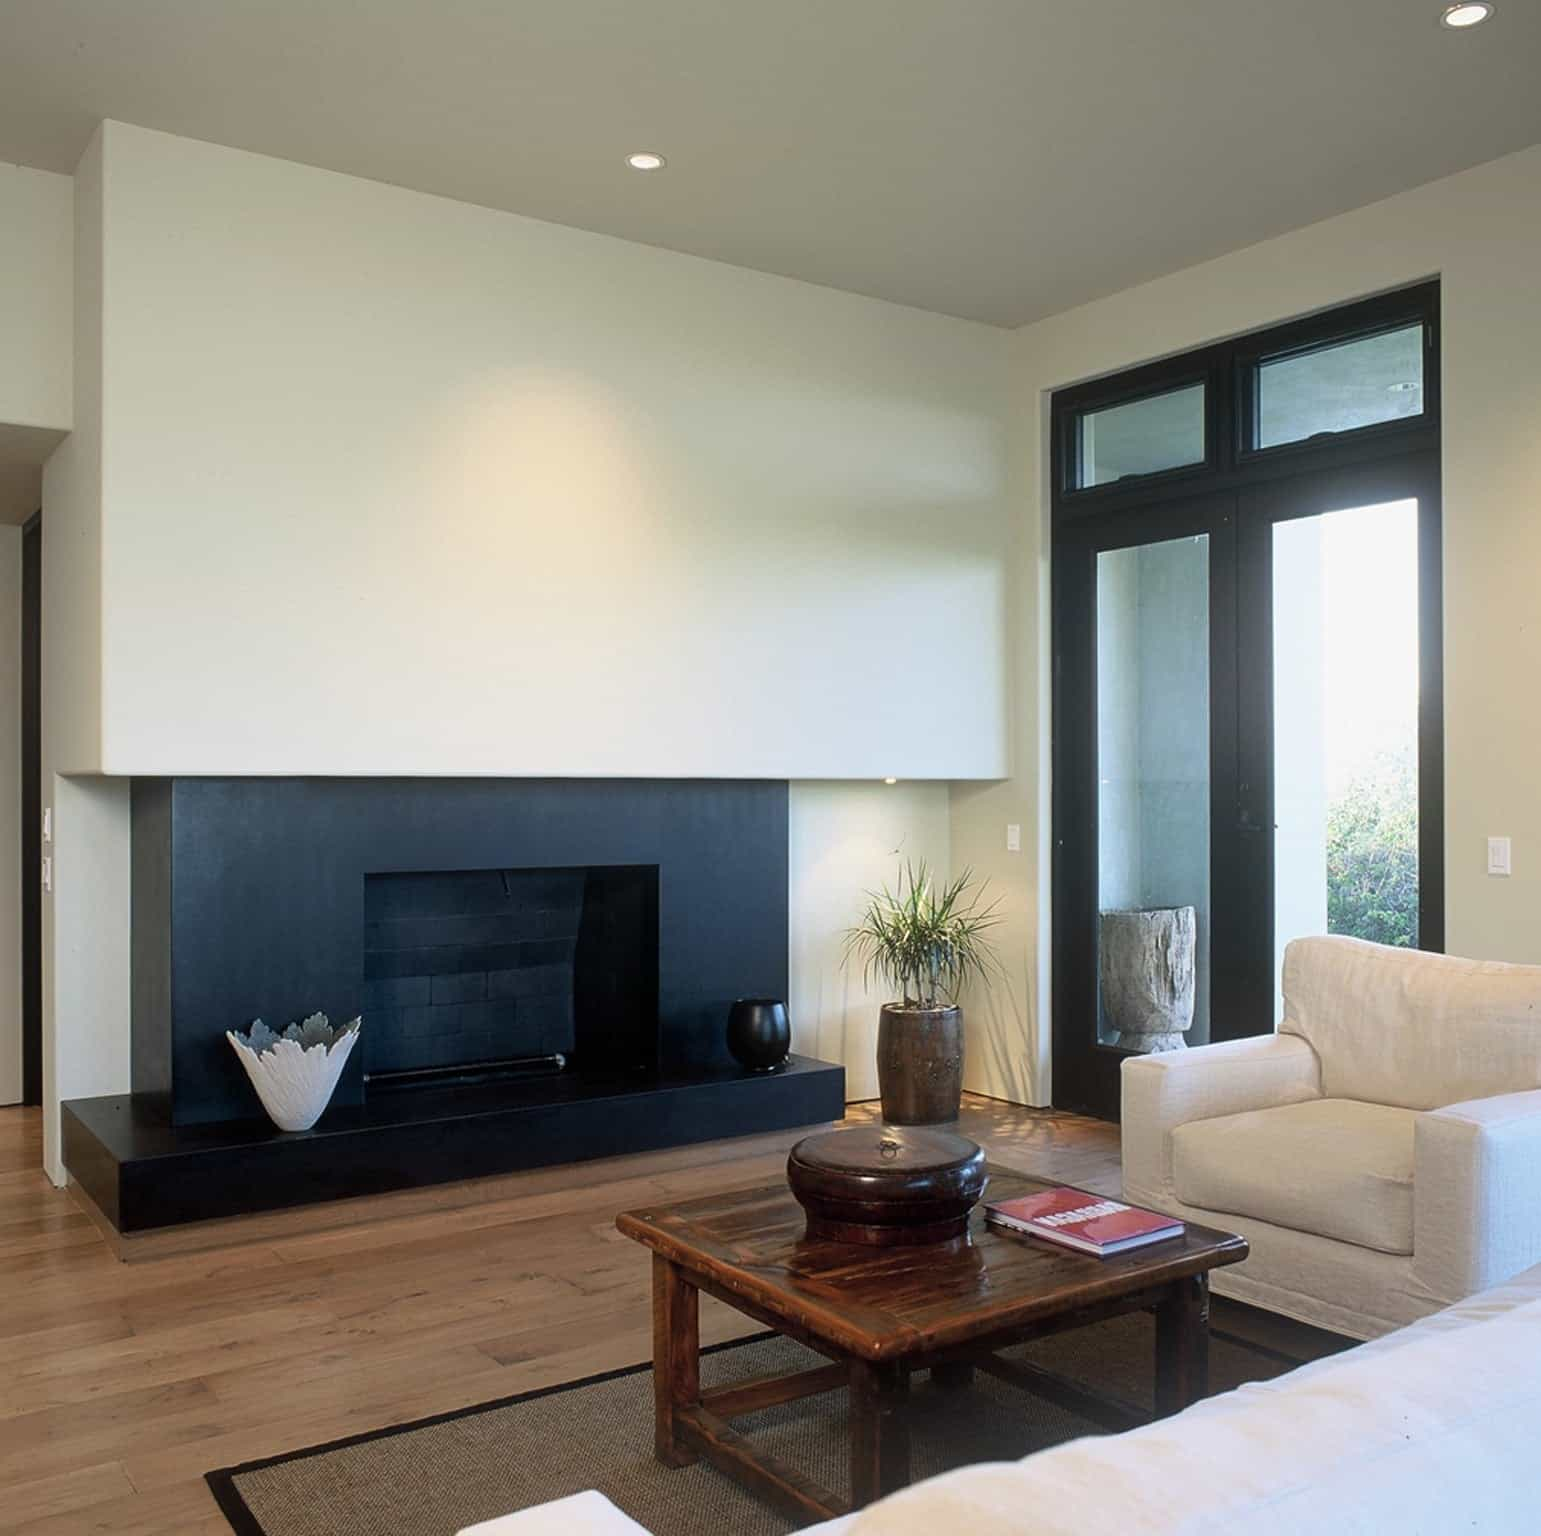 Featured Image of Minimalist Asian Style Living Room With Black Fireplace